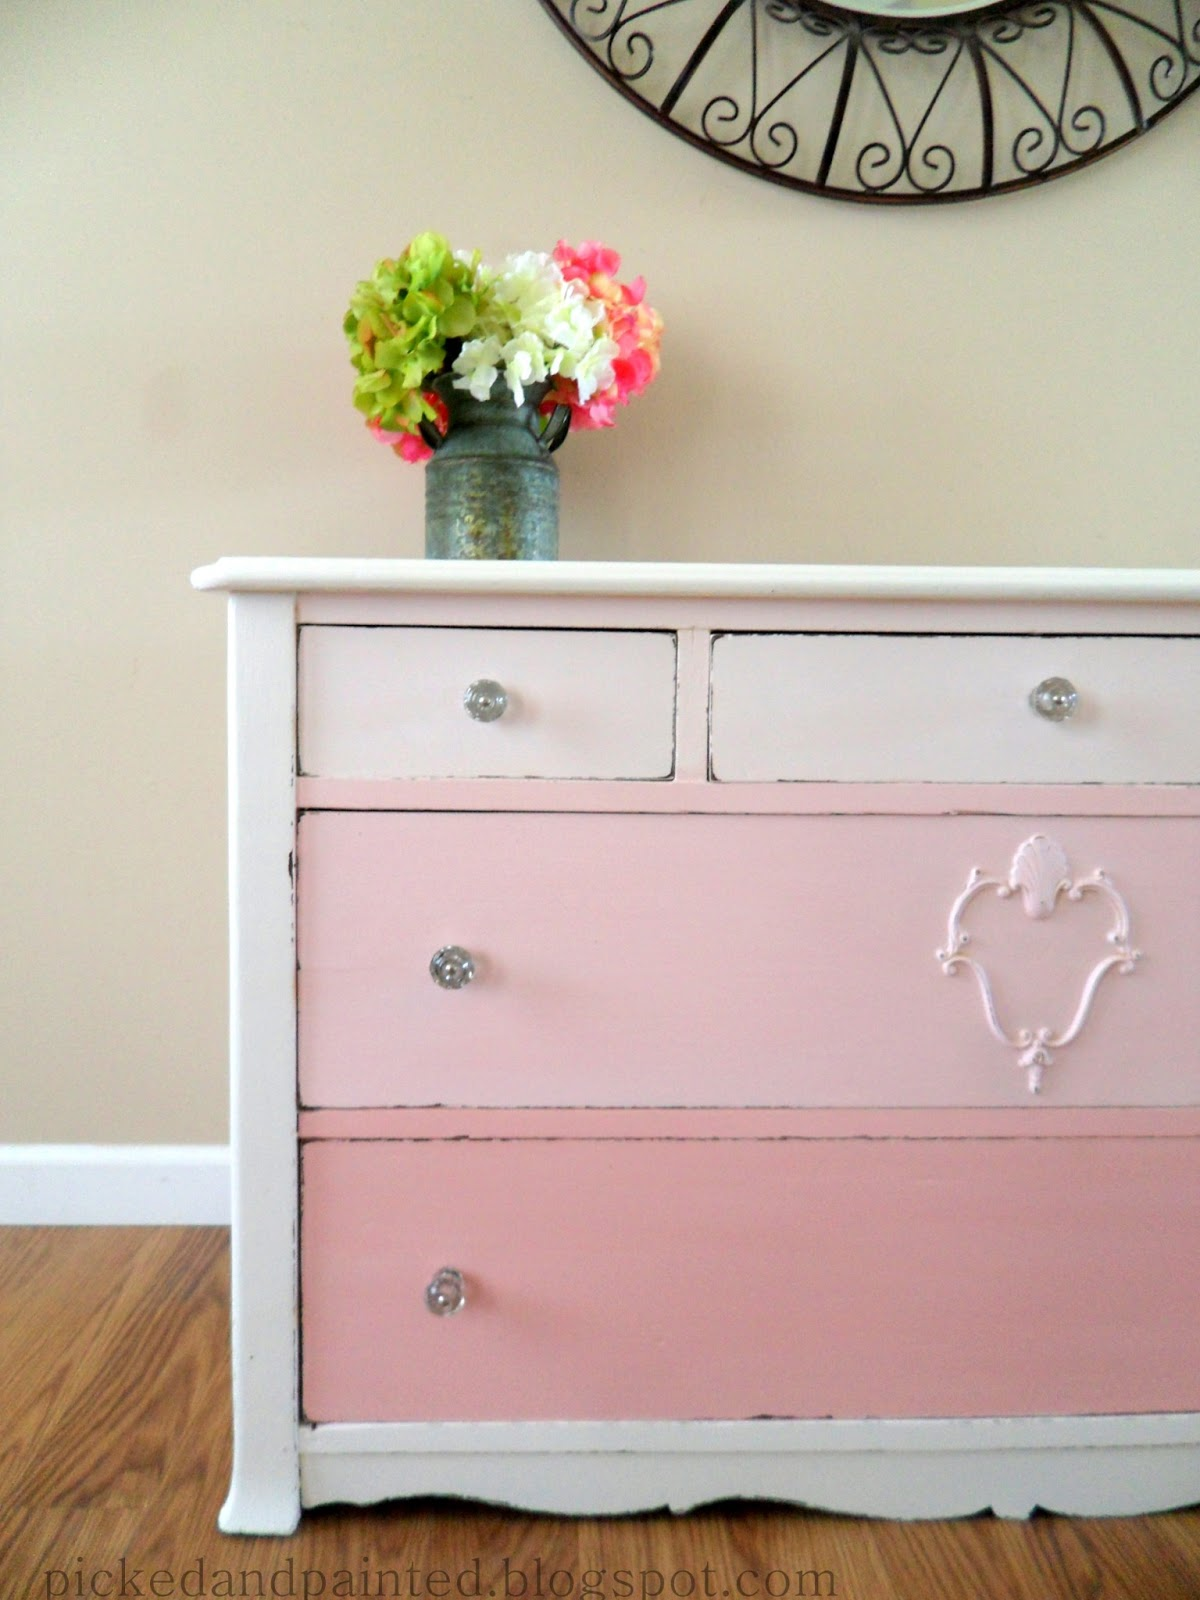 Picked & Painted: Pink Ombre Dresser